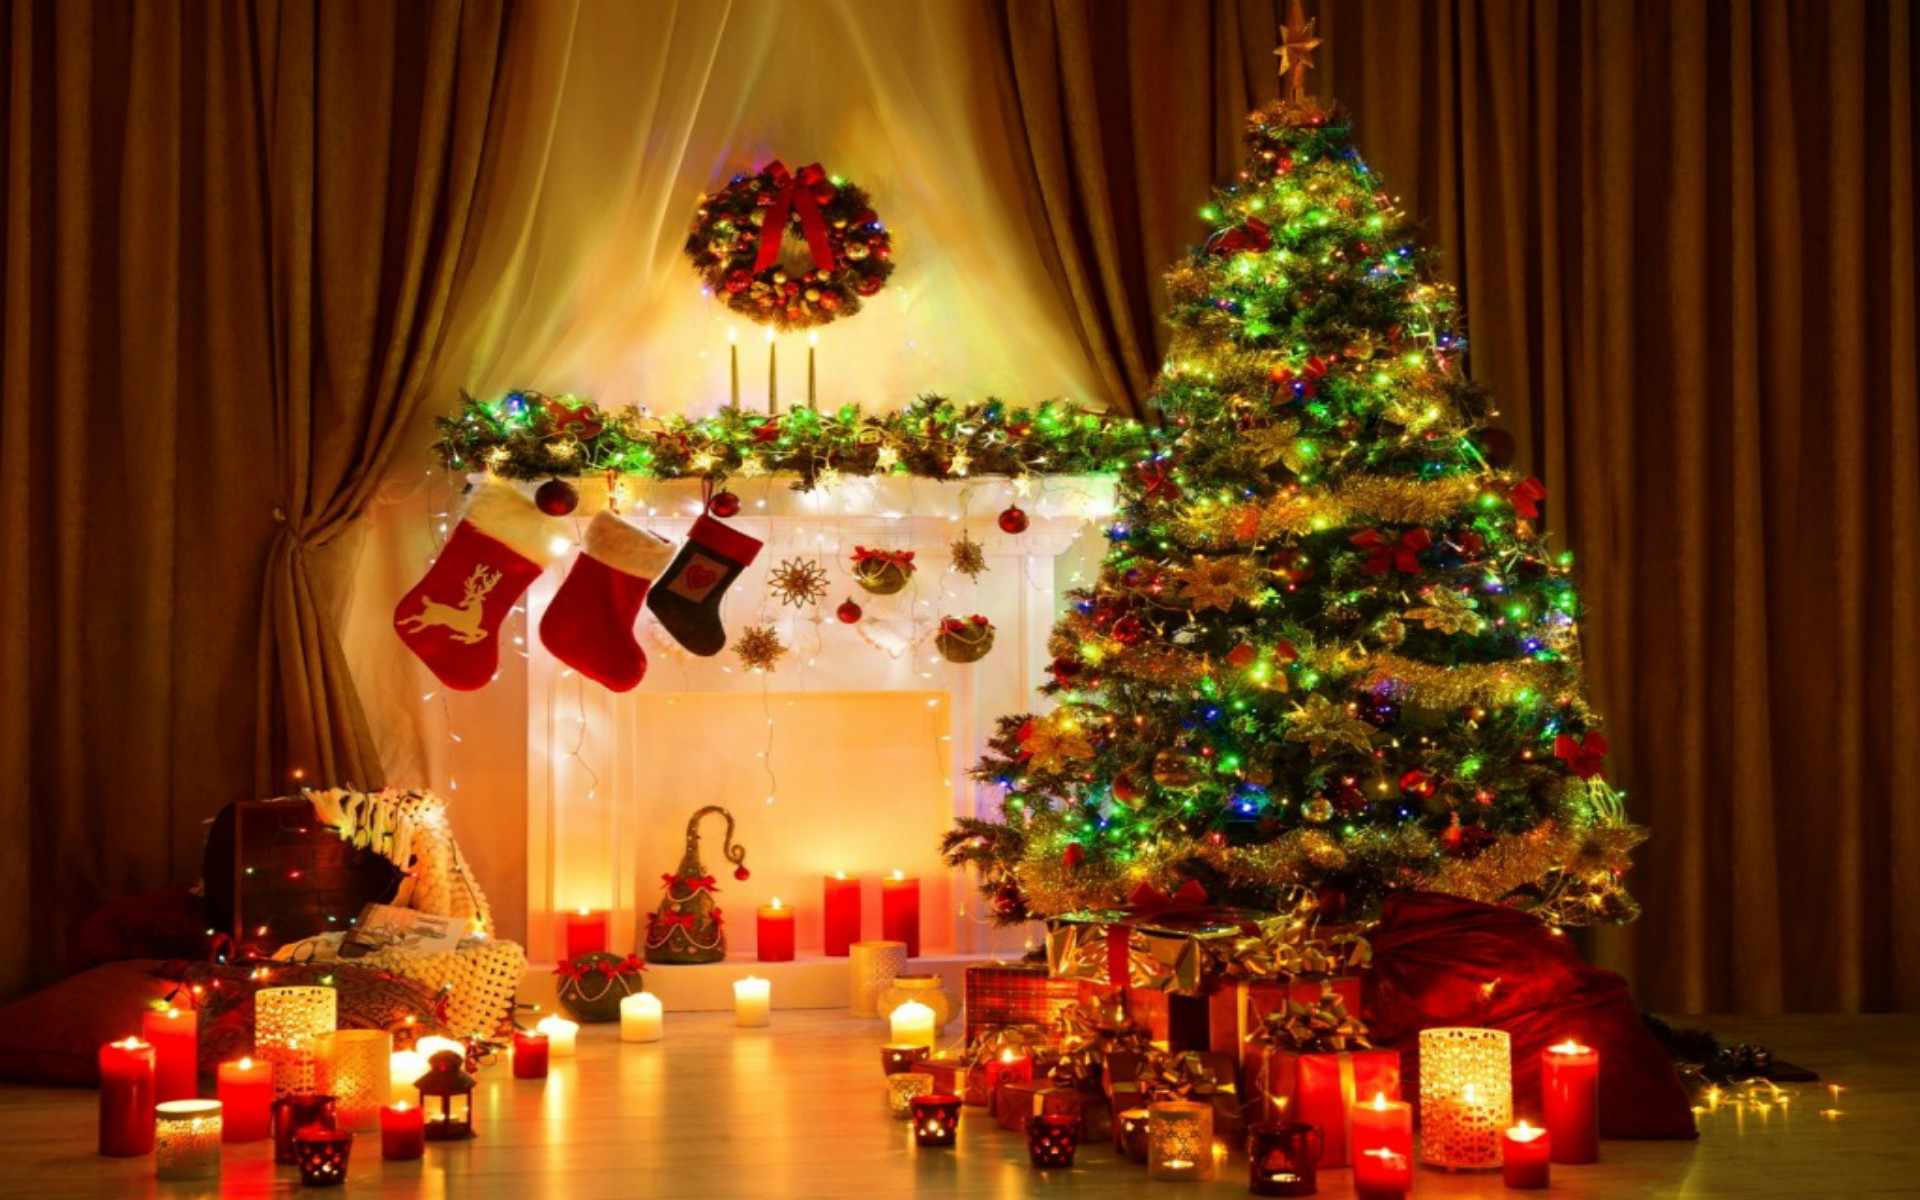 Christmas trees backgrounds 59 images 1920x1200 19 hd christmas wallpapers desktop backgrounds merry christmas voltagebd Gallery